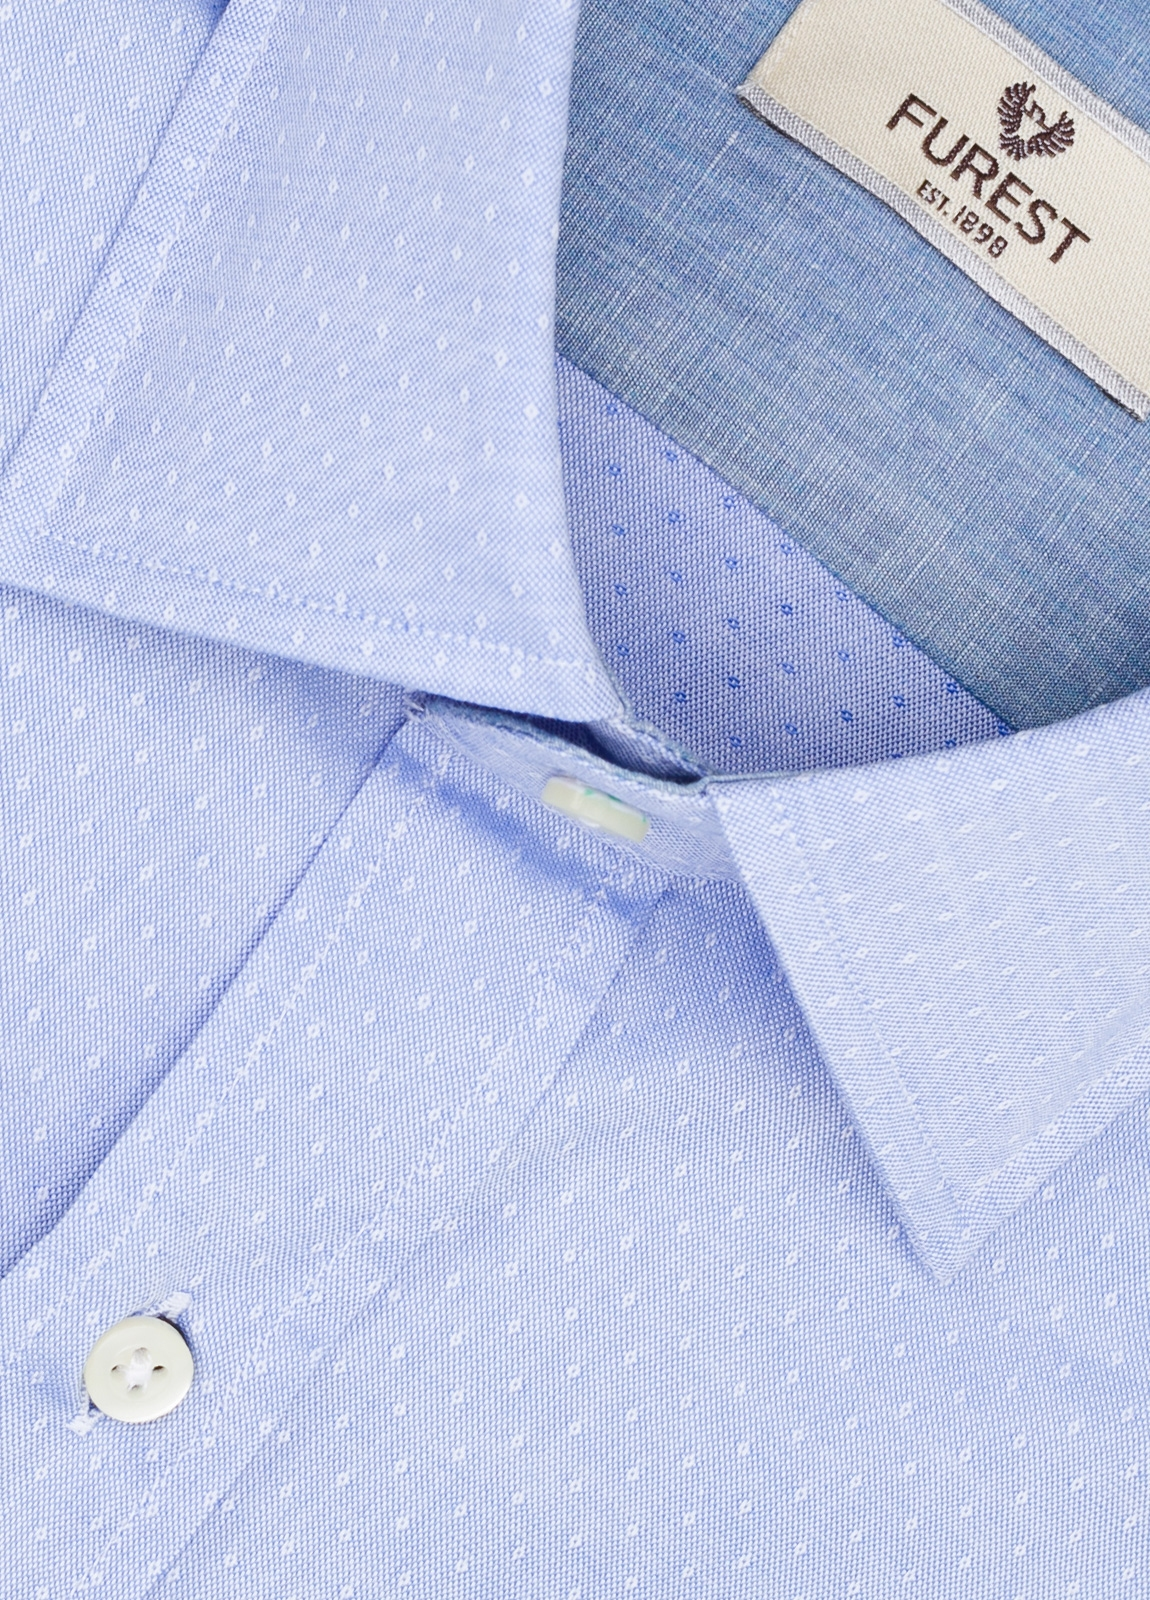 Camisa Leisure Wear REGULAR FIT modelo PORTO microestampado color azul. 100% Algodón. - Ítem1